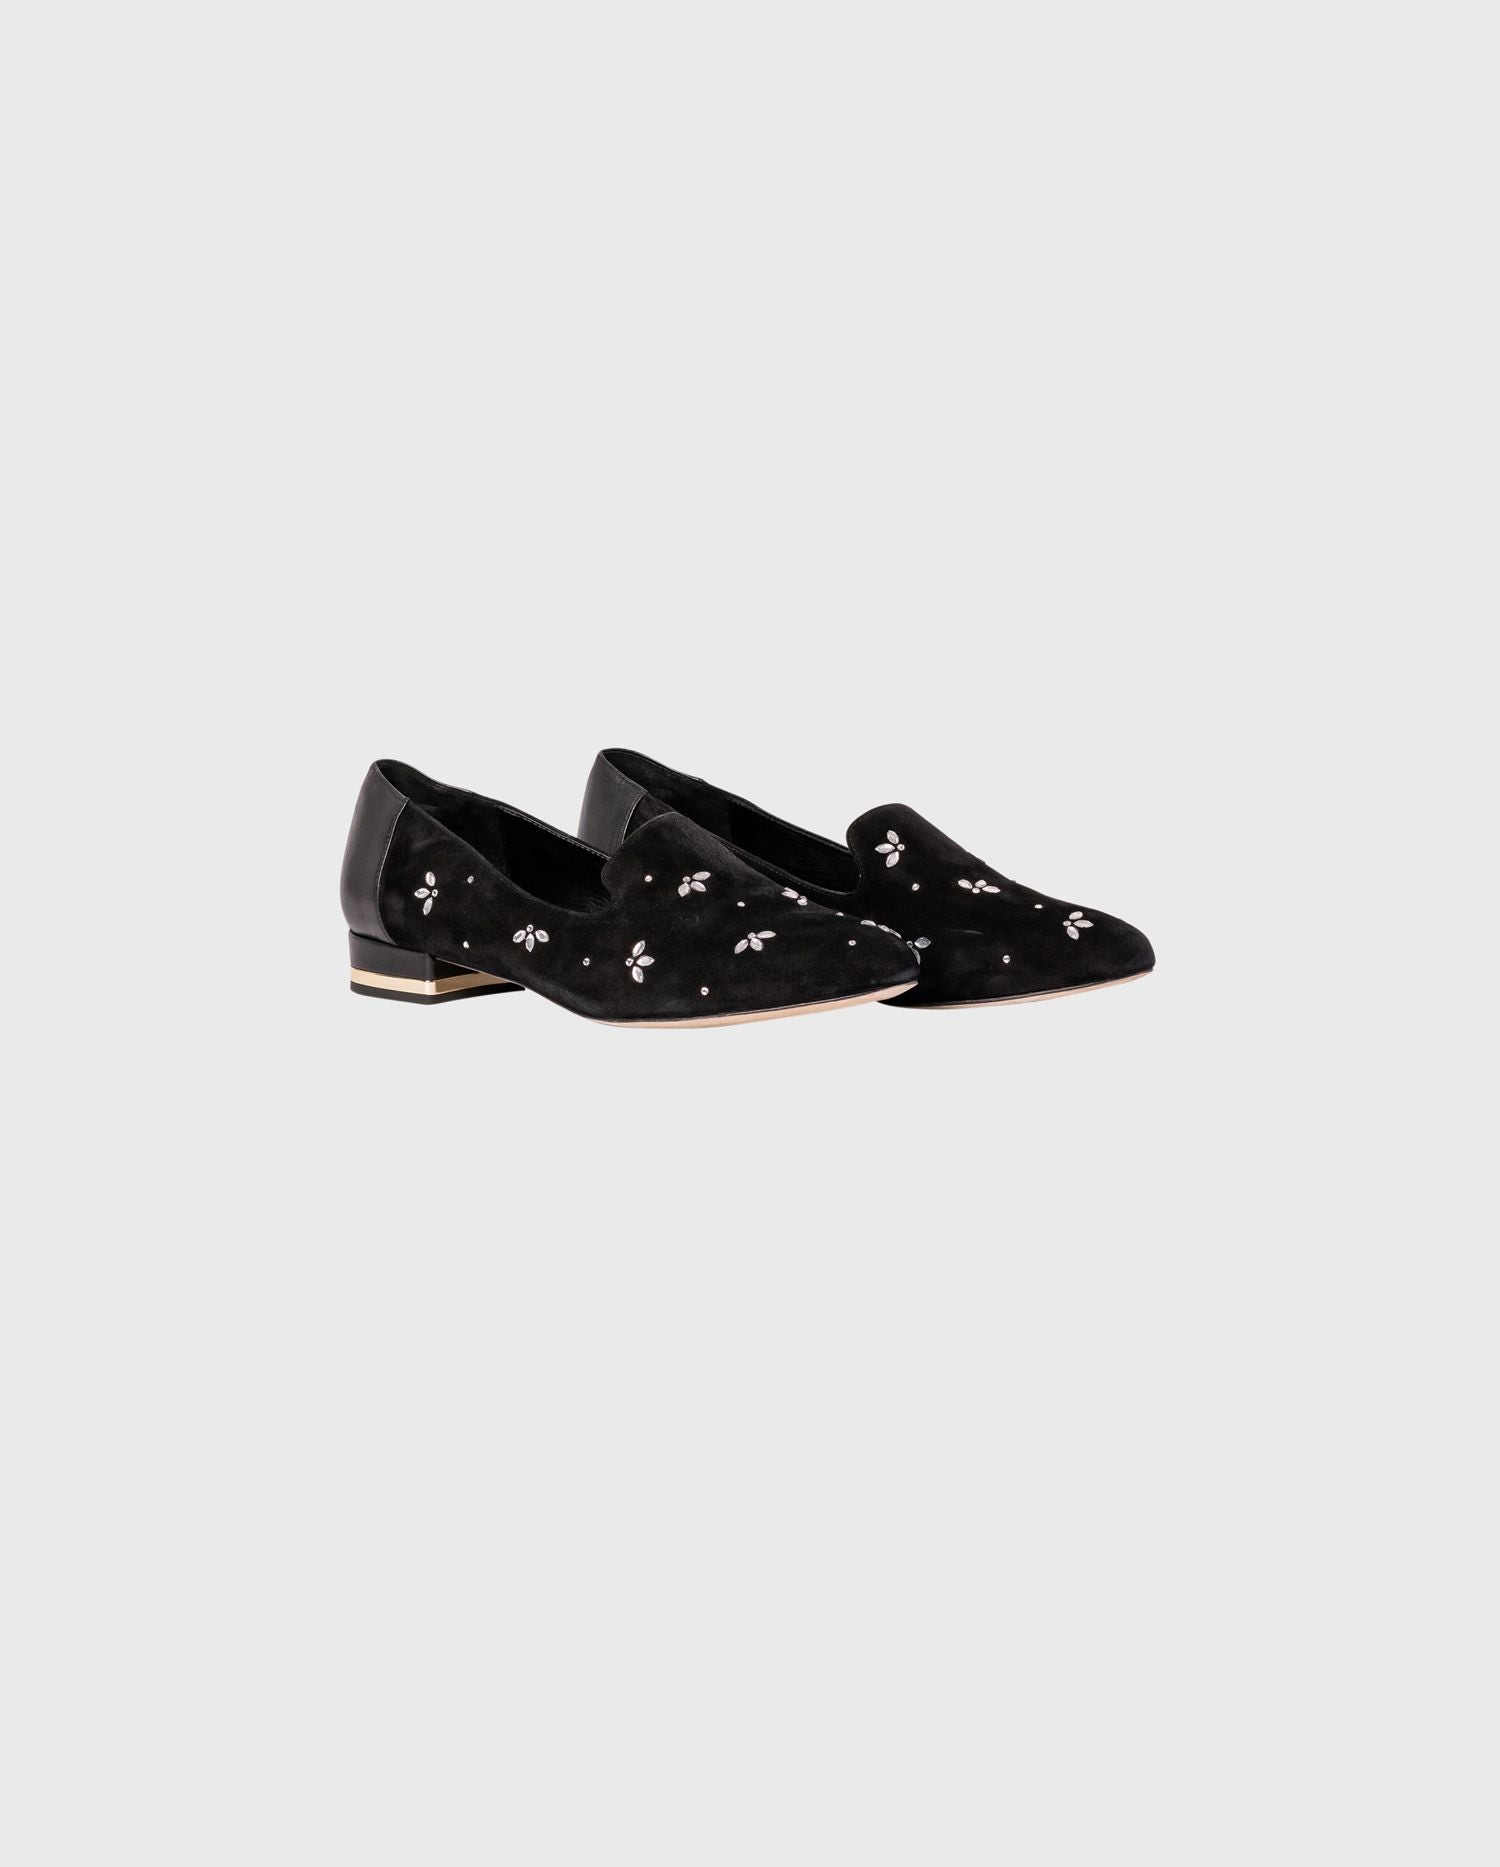 The NADIA suede and leather flats  with jewels are the perfect flat to add to your Parisian inspired look.